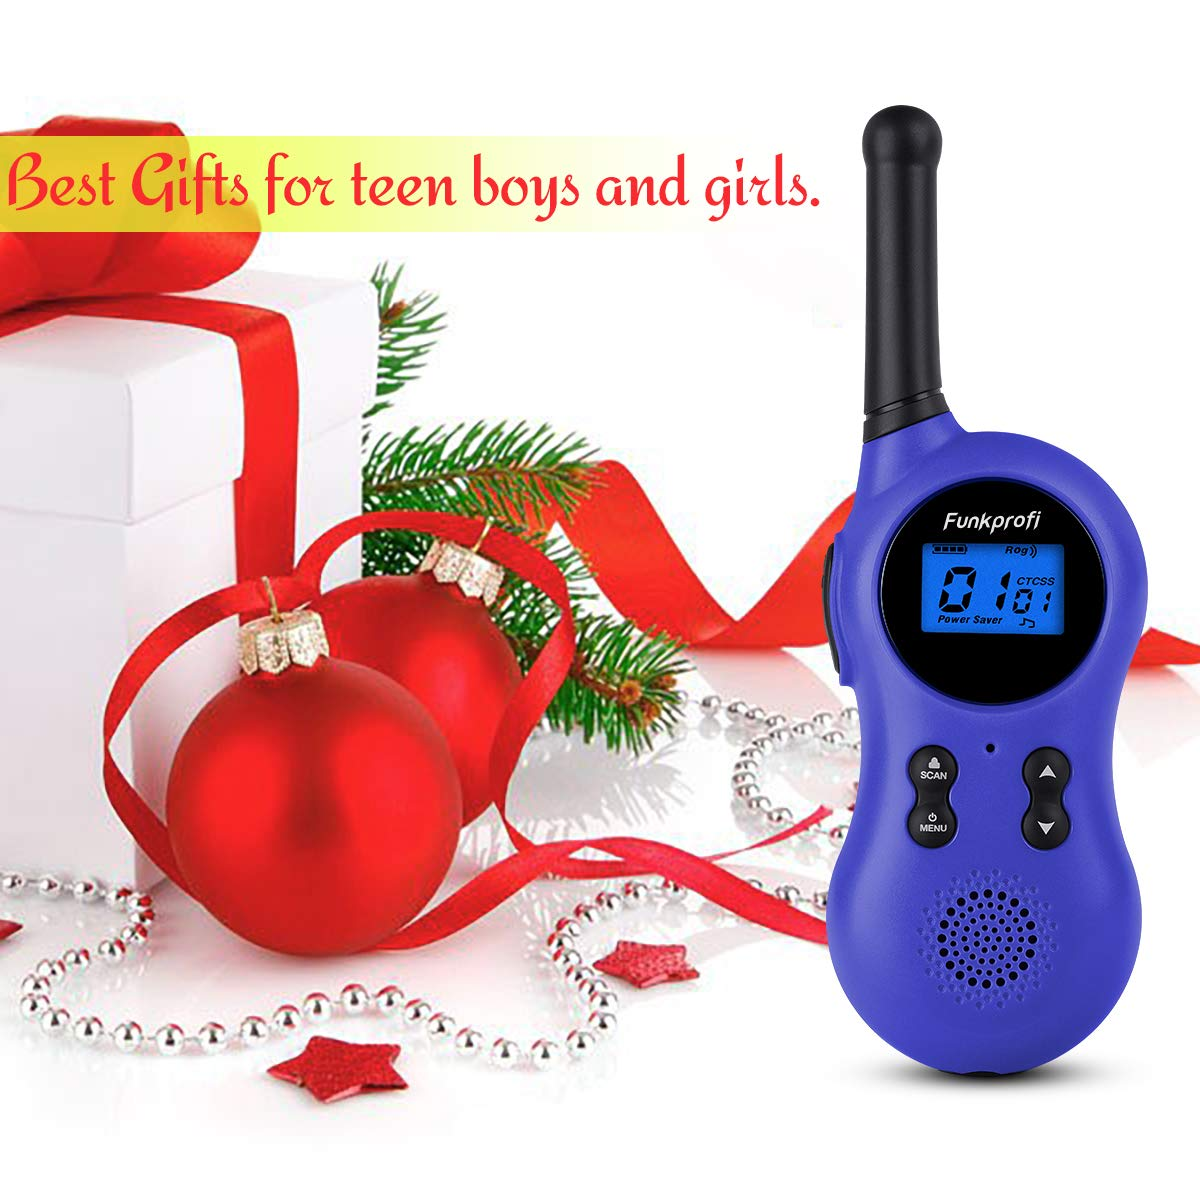 Funkprofi Walkie Talkies for Kids 22 Channels VOX Voice Activated Rechargeable Kids Walkie Talkies for Camping, Hiking, Batteries and Type C Cable Included, Ideal Toys for Teen Boys and Girls by Funkprofi (Image #6)